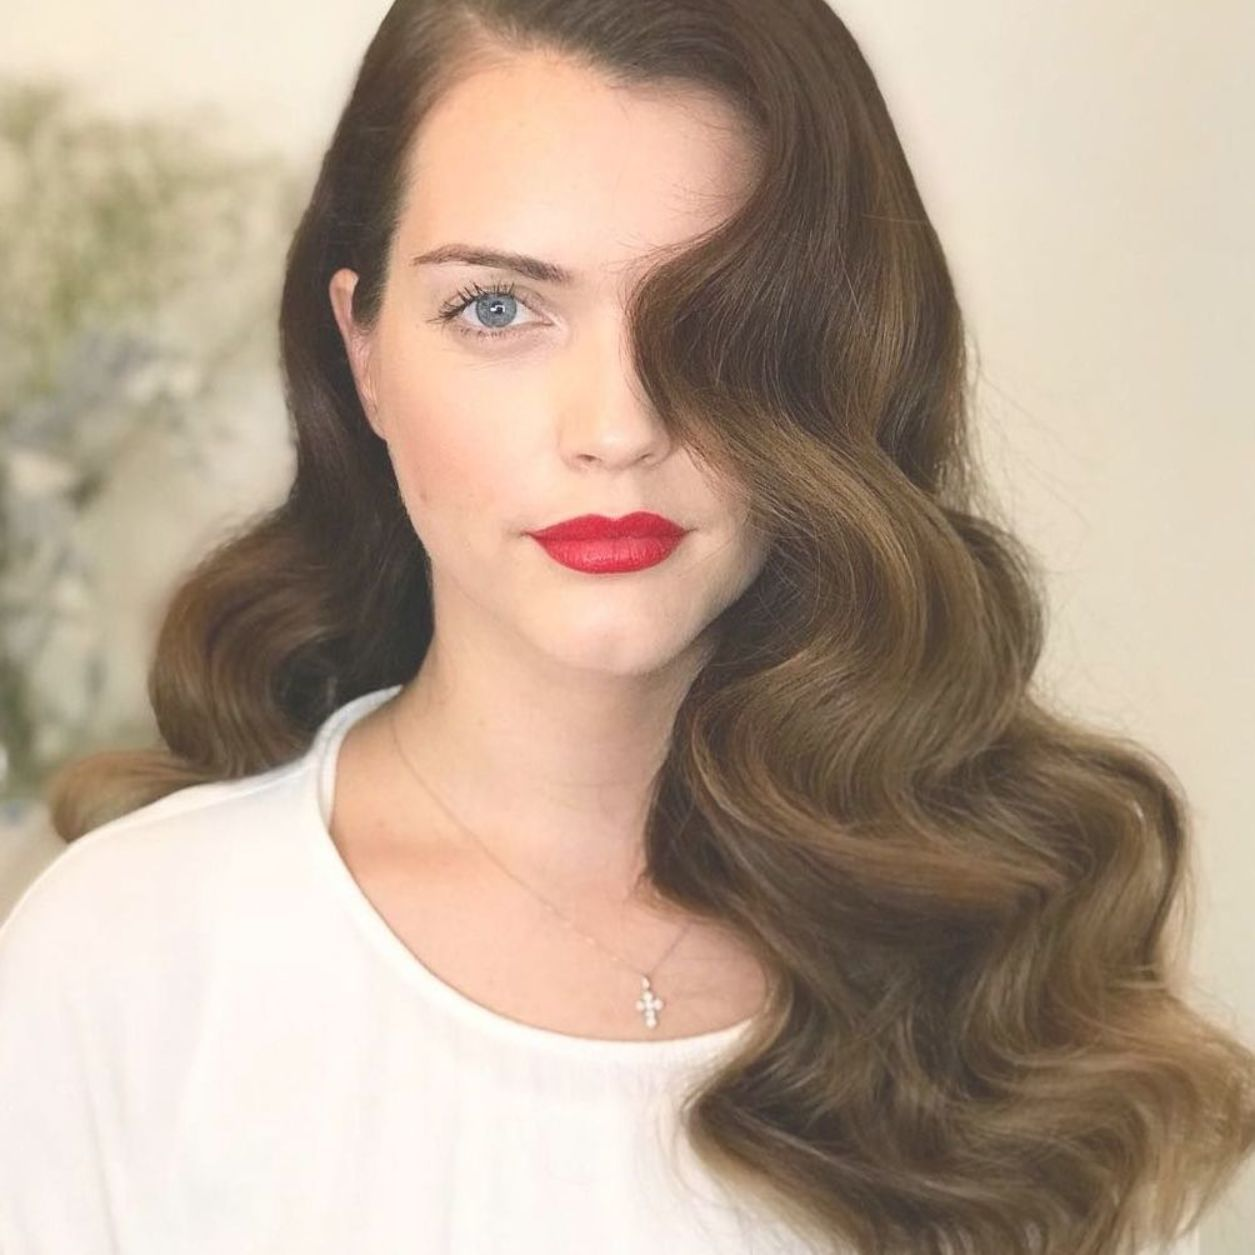 Hollywood Waves Perfection Hollywoodwaves Hairstyle Darkhair Model Redlips Weddinghairstyle Old Hollywood Hair Glamorous Wedding Hair Hollywood Hair